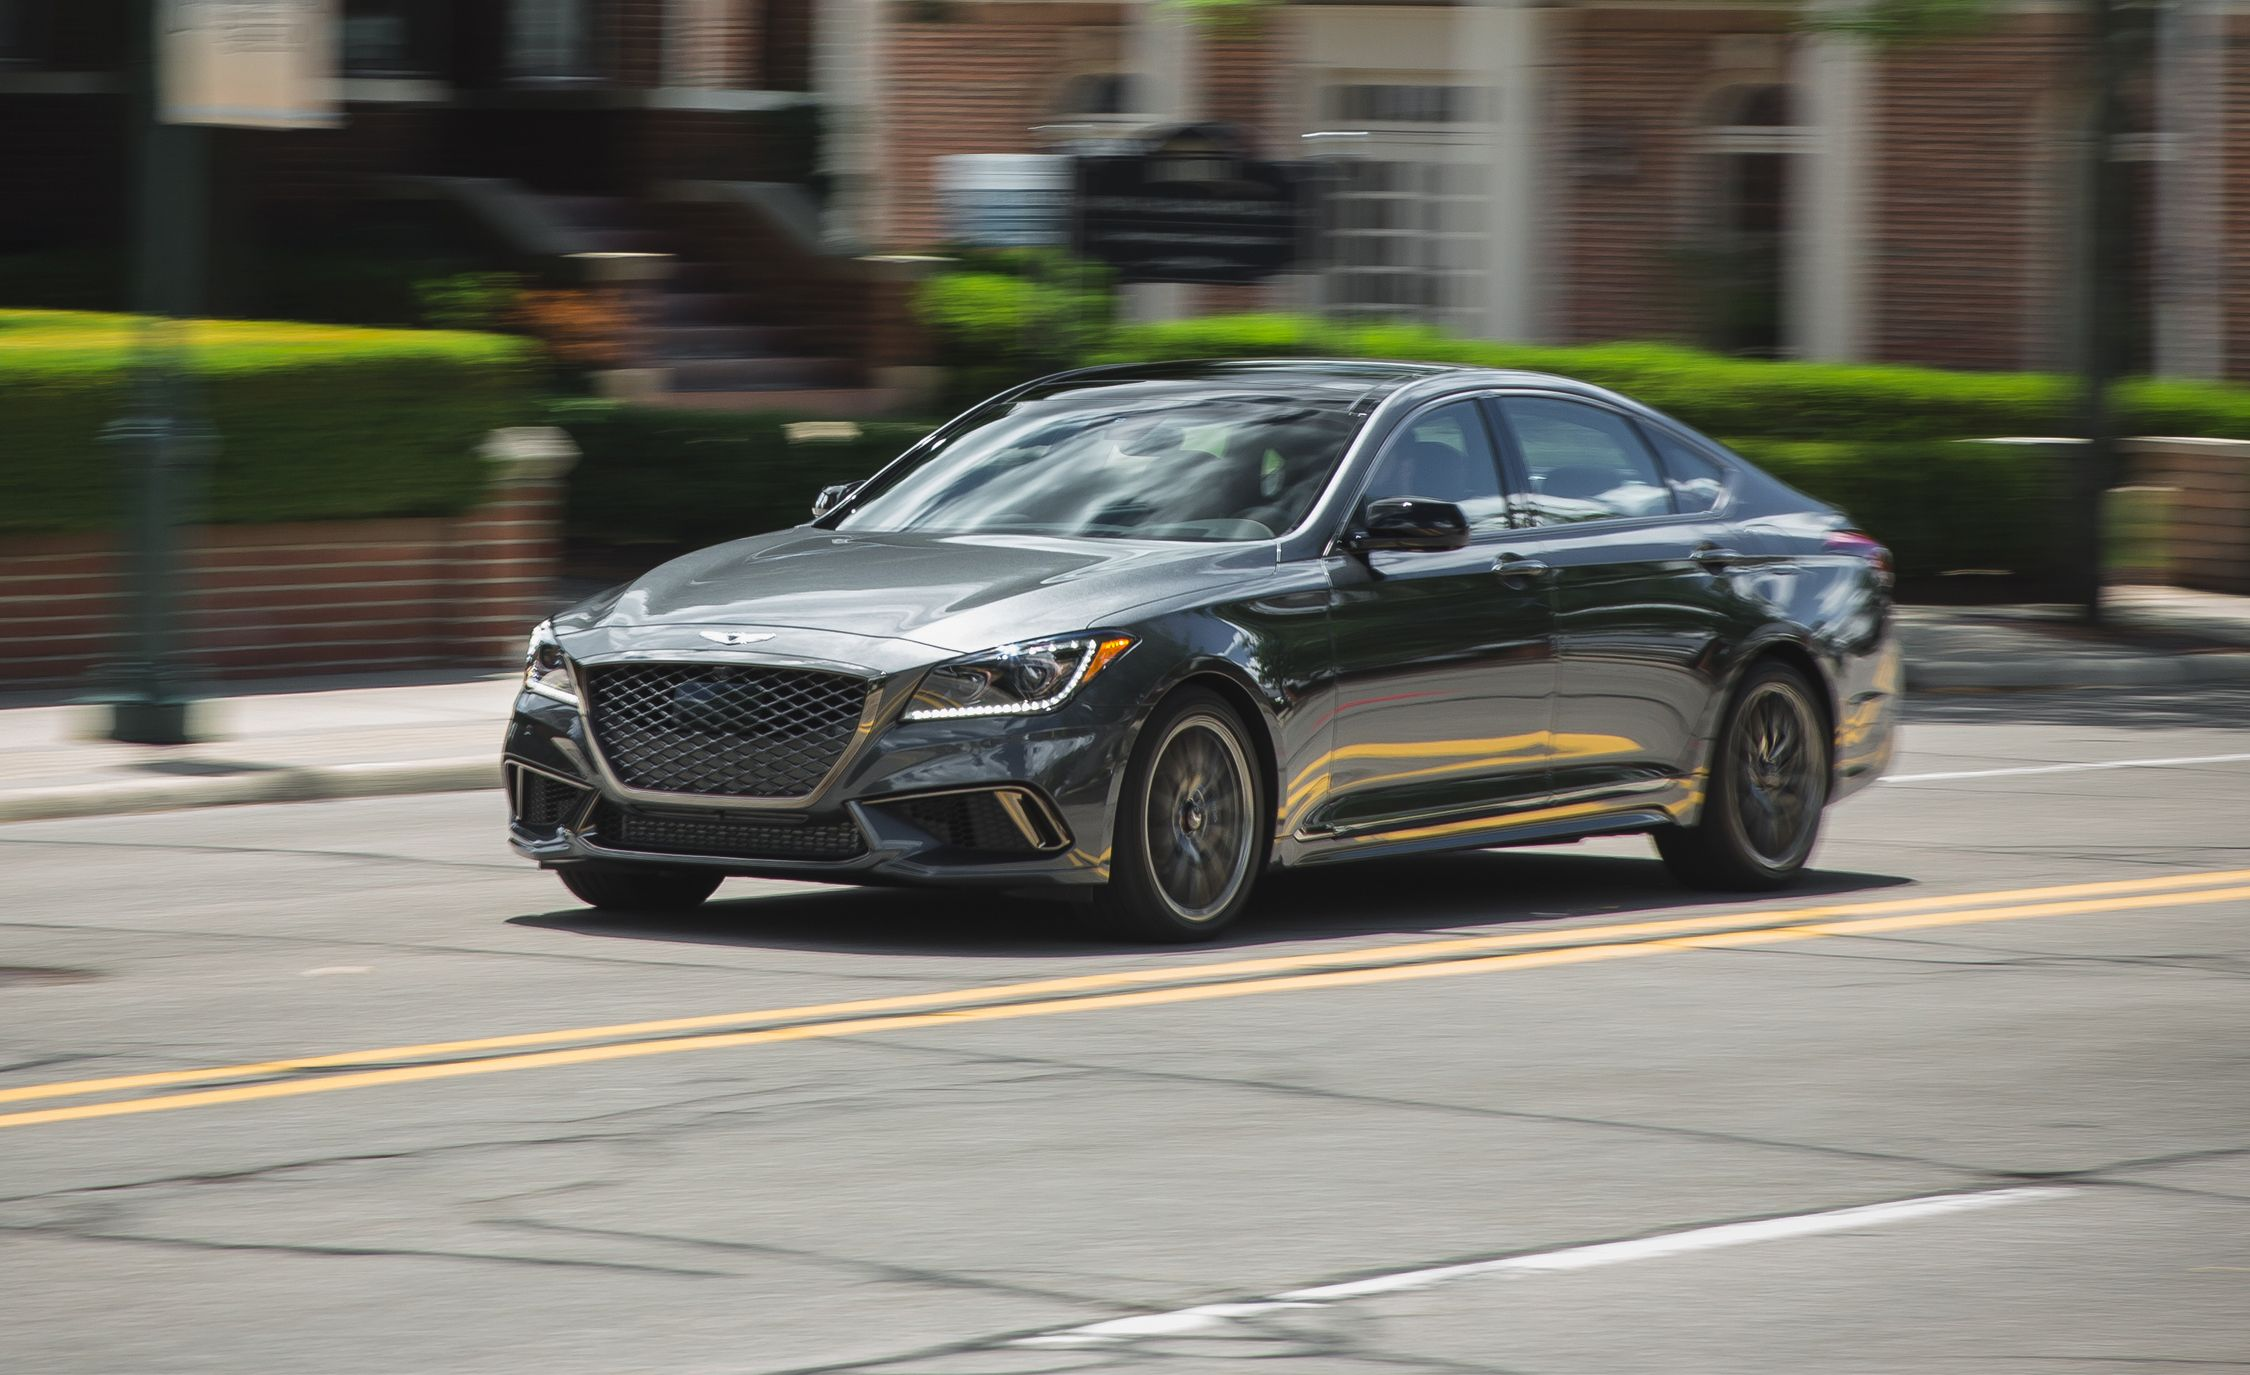 2018 Genesis G80 | In-Depth Model Review | Car and Driver